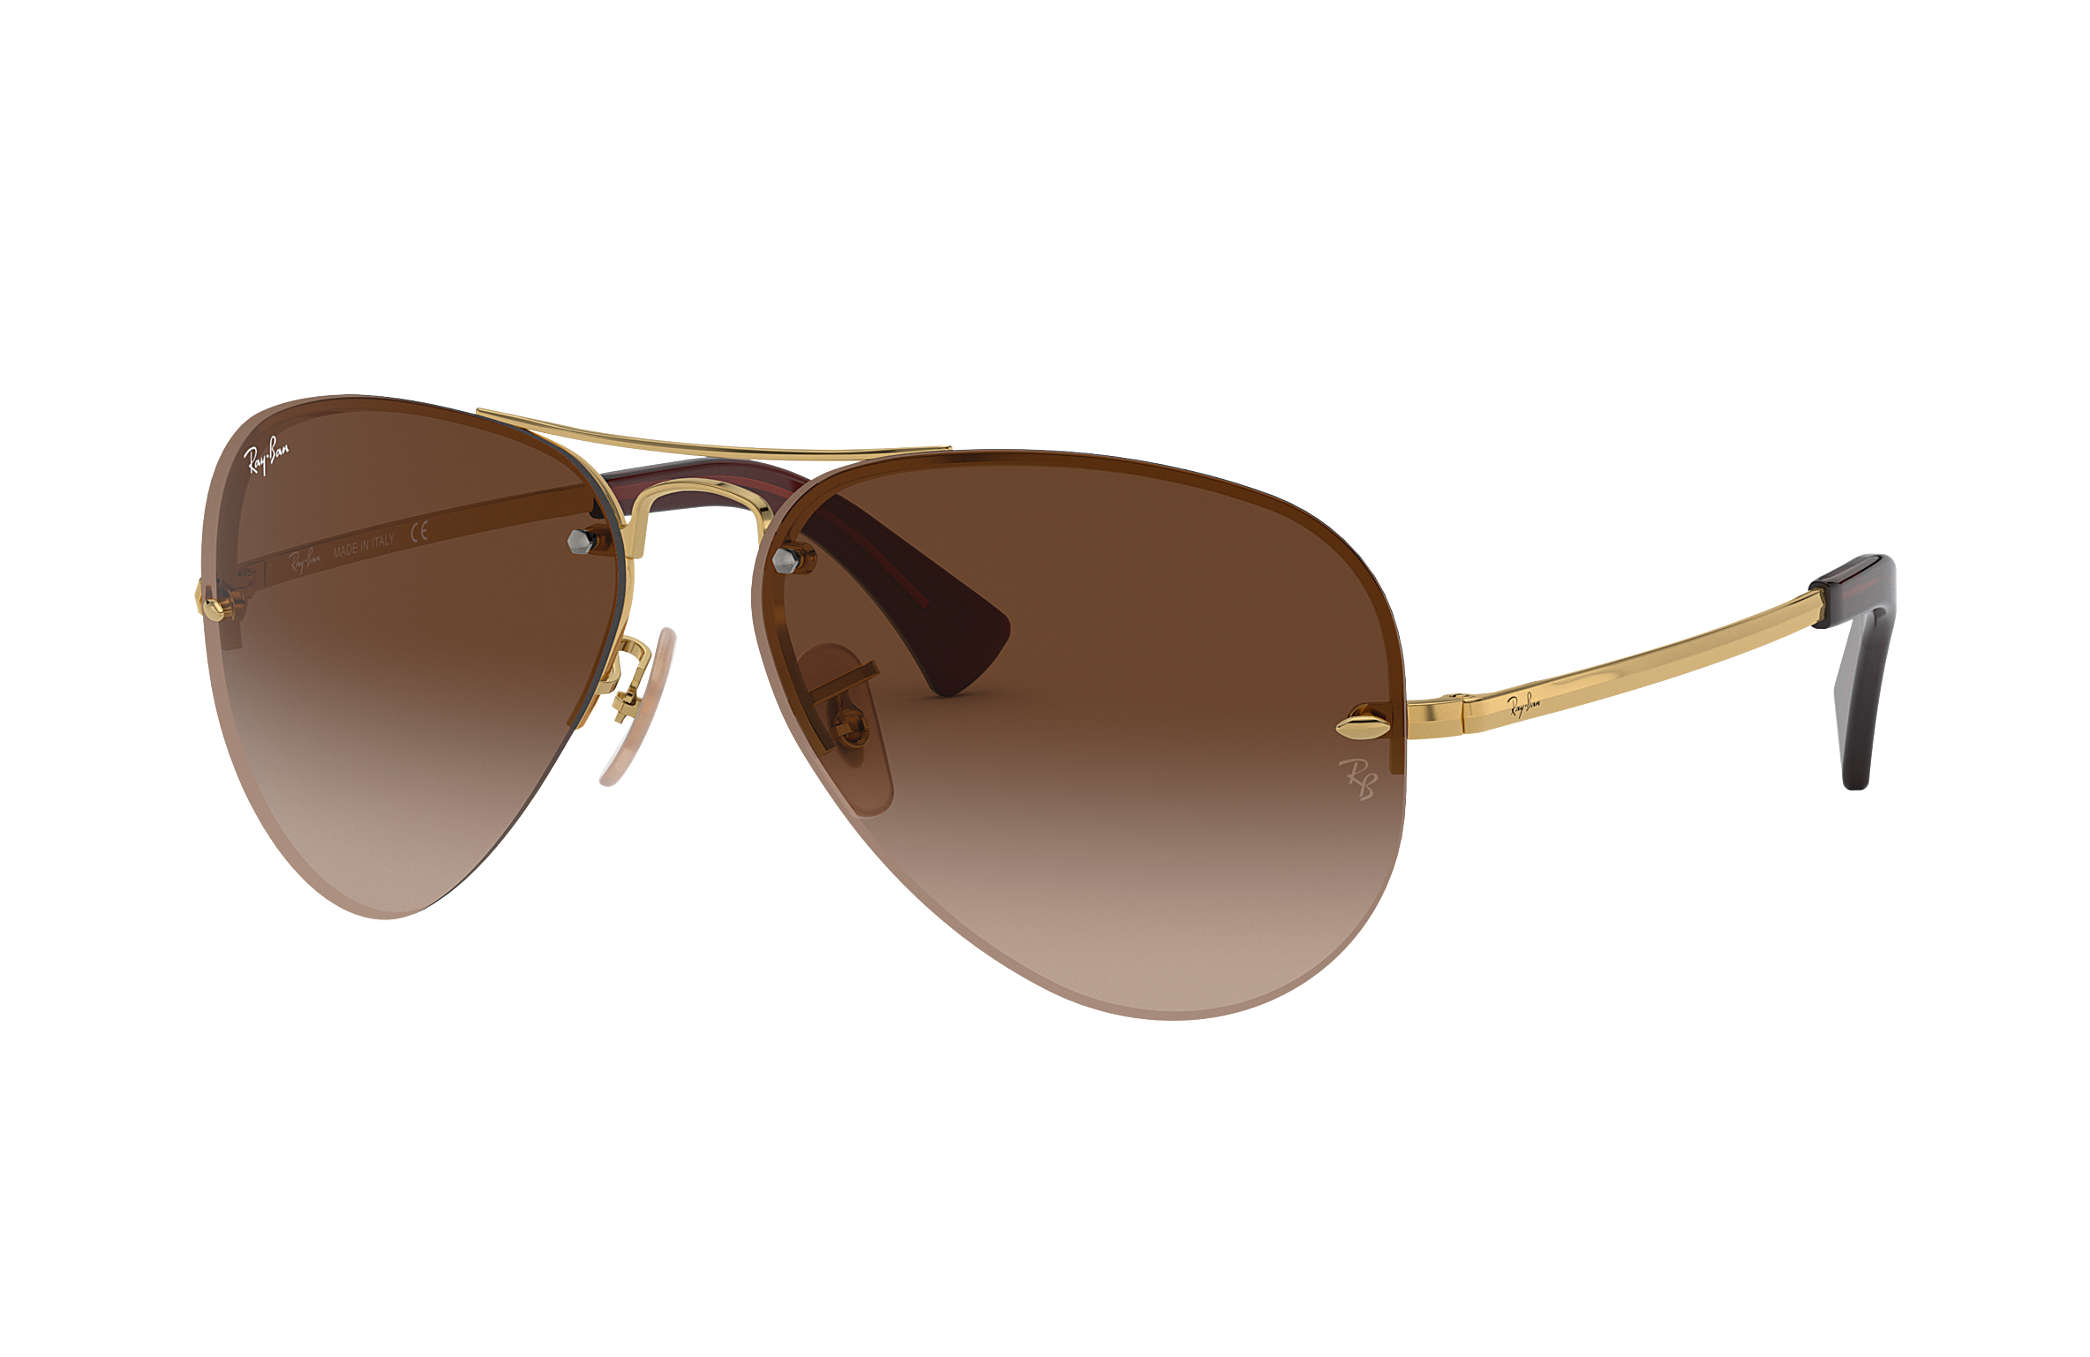 Ray ban sunglasses with price - Ray Ban 0rb3449 Rb3449 Gold Sun